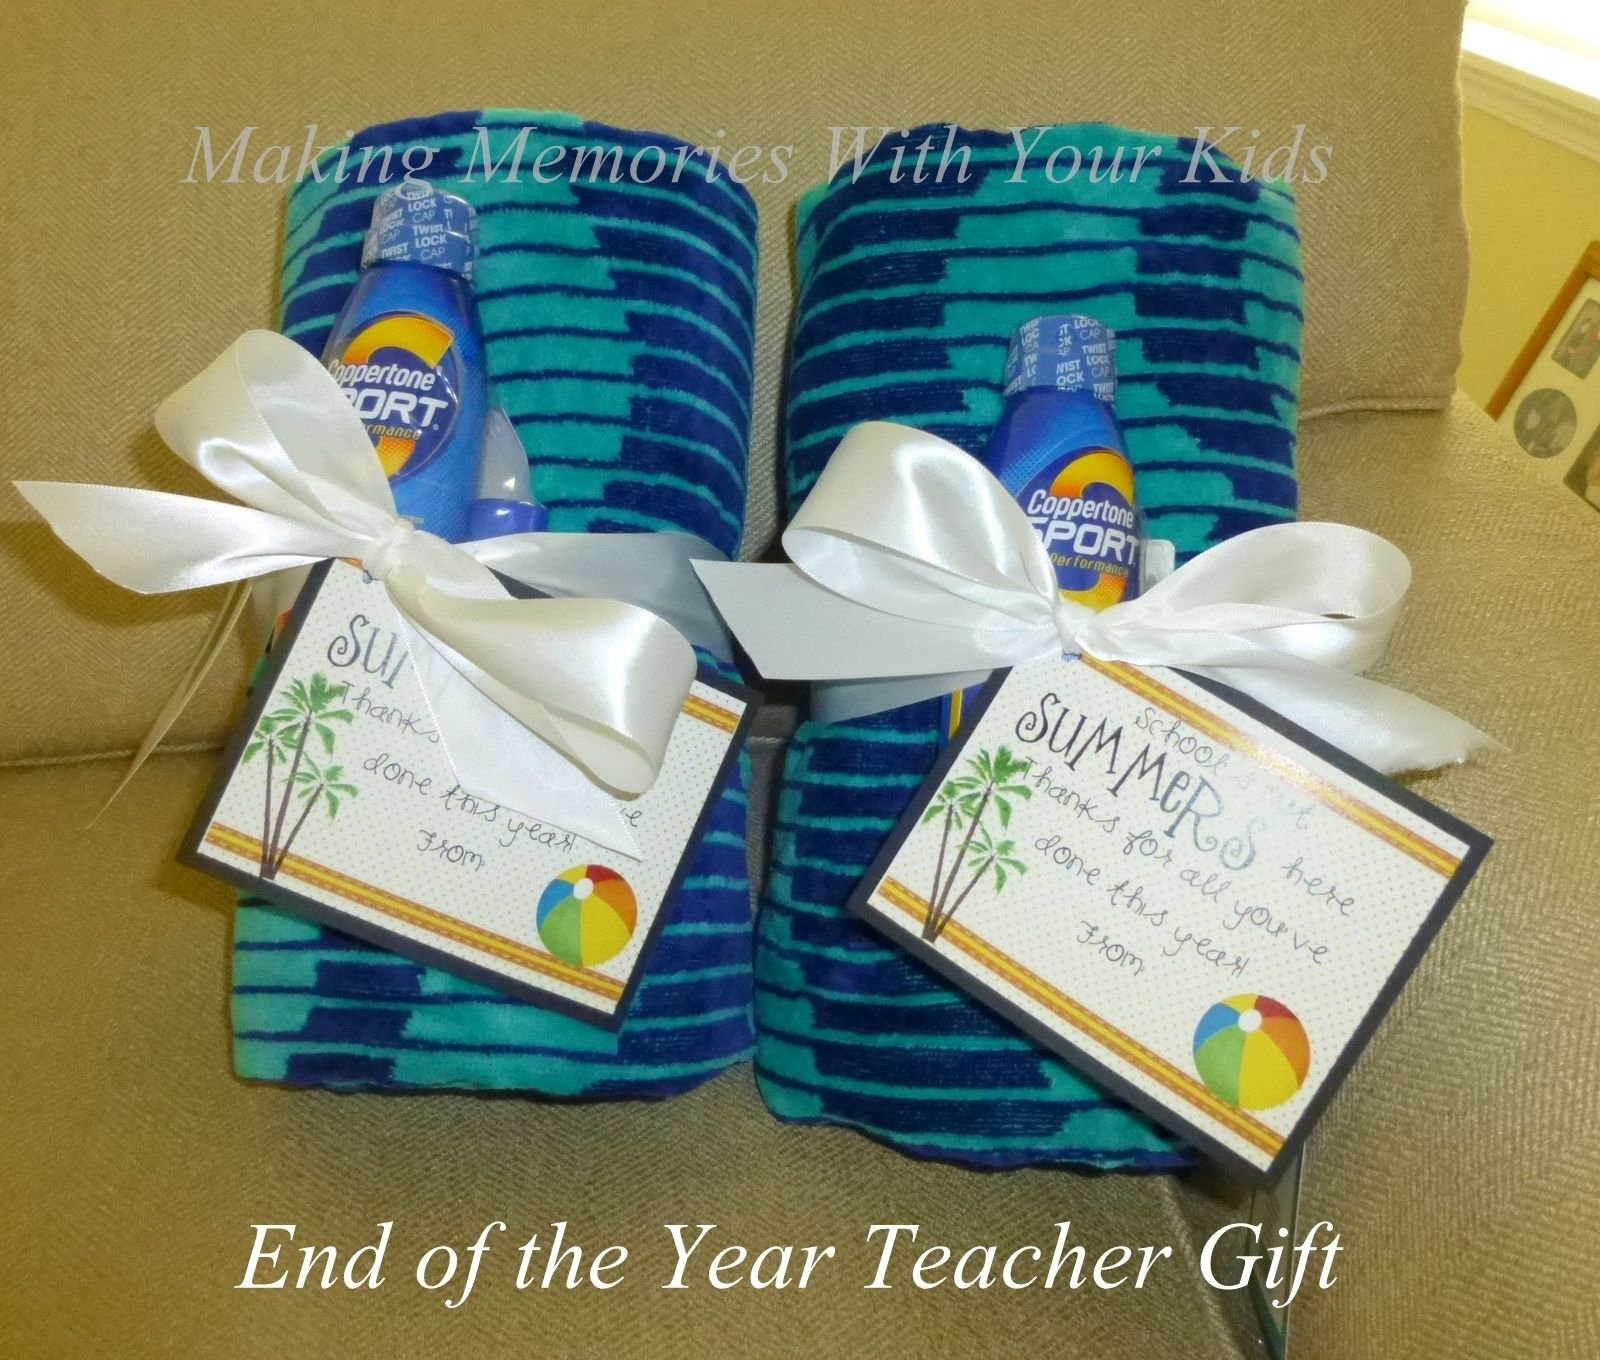 10 Fashionable Ideas For End Of Year Teacher Gifts end of year teacher gift google search gift ideas pinterest 6